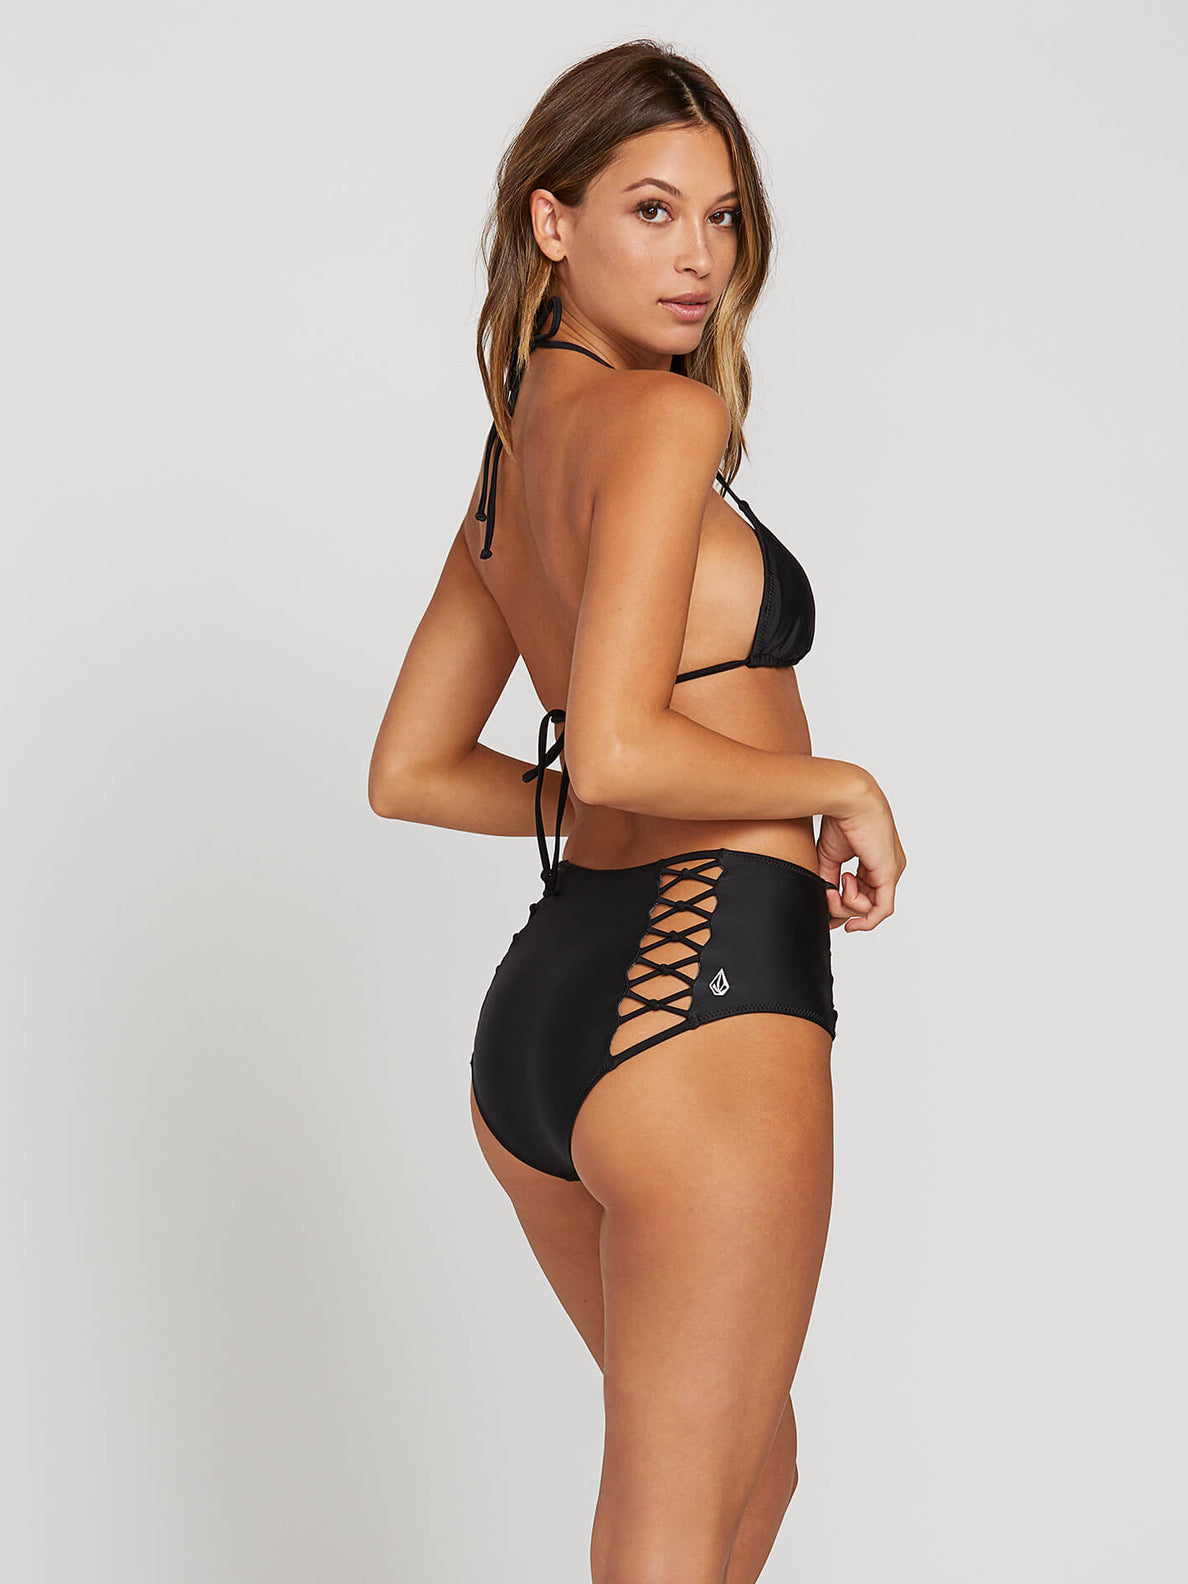 Simply Solids Retro Bottom Extended Size - Black